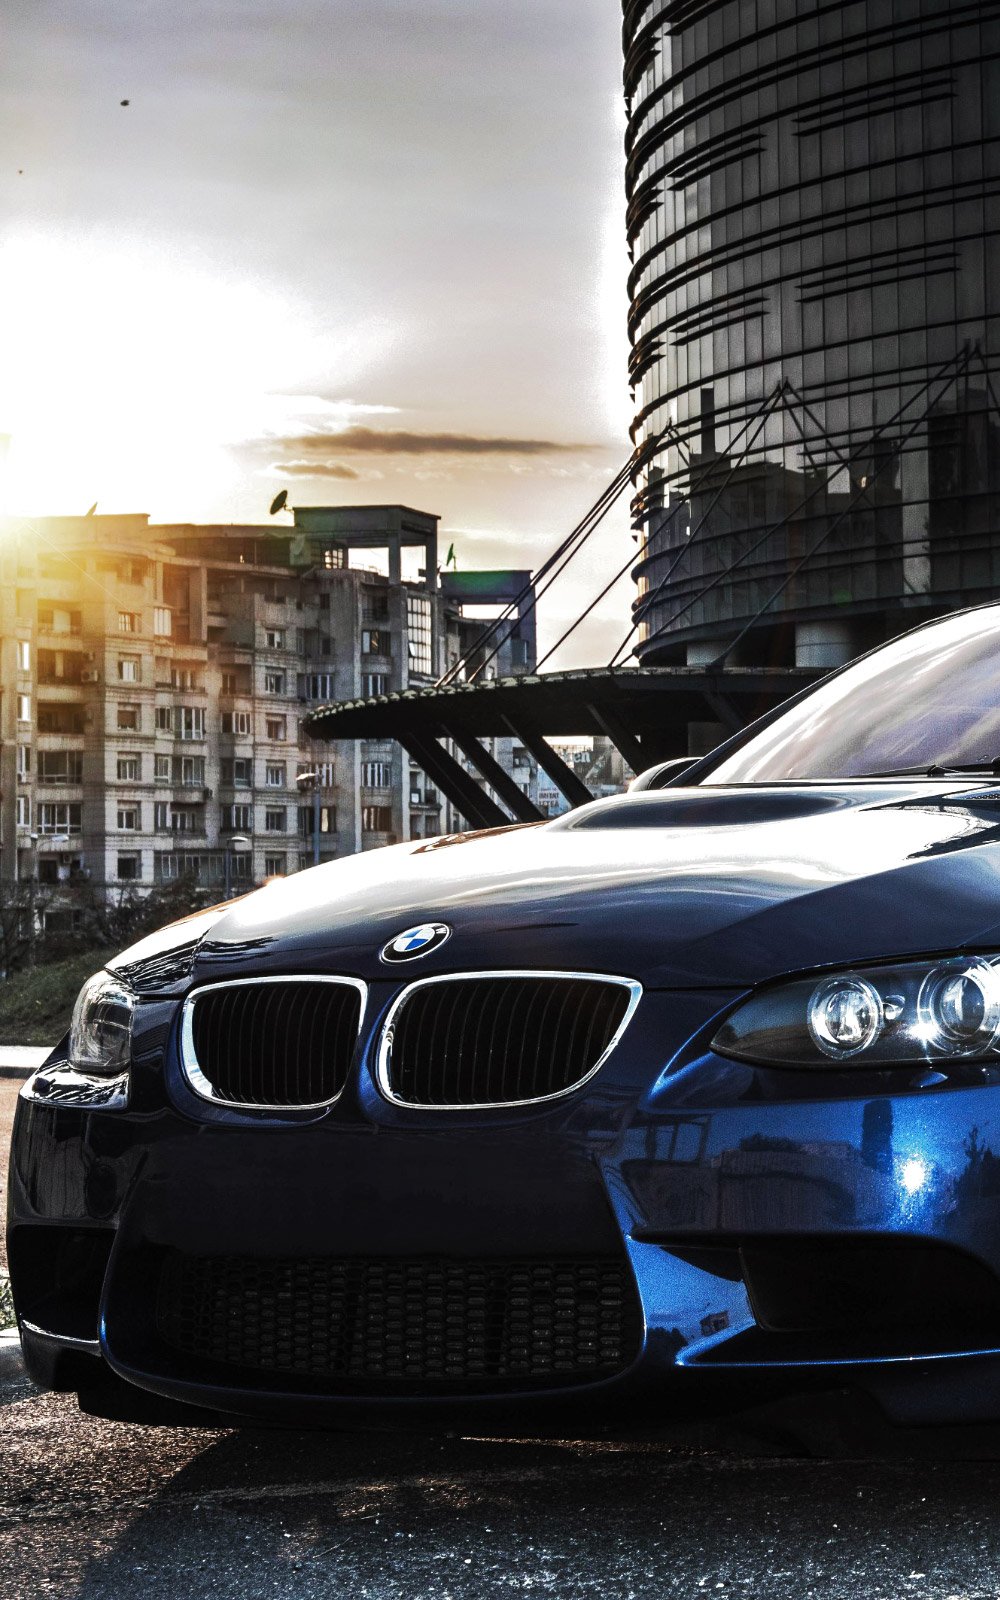 Download Bmw Car Wallpaper For Mobile Gallery